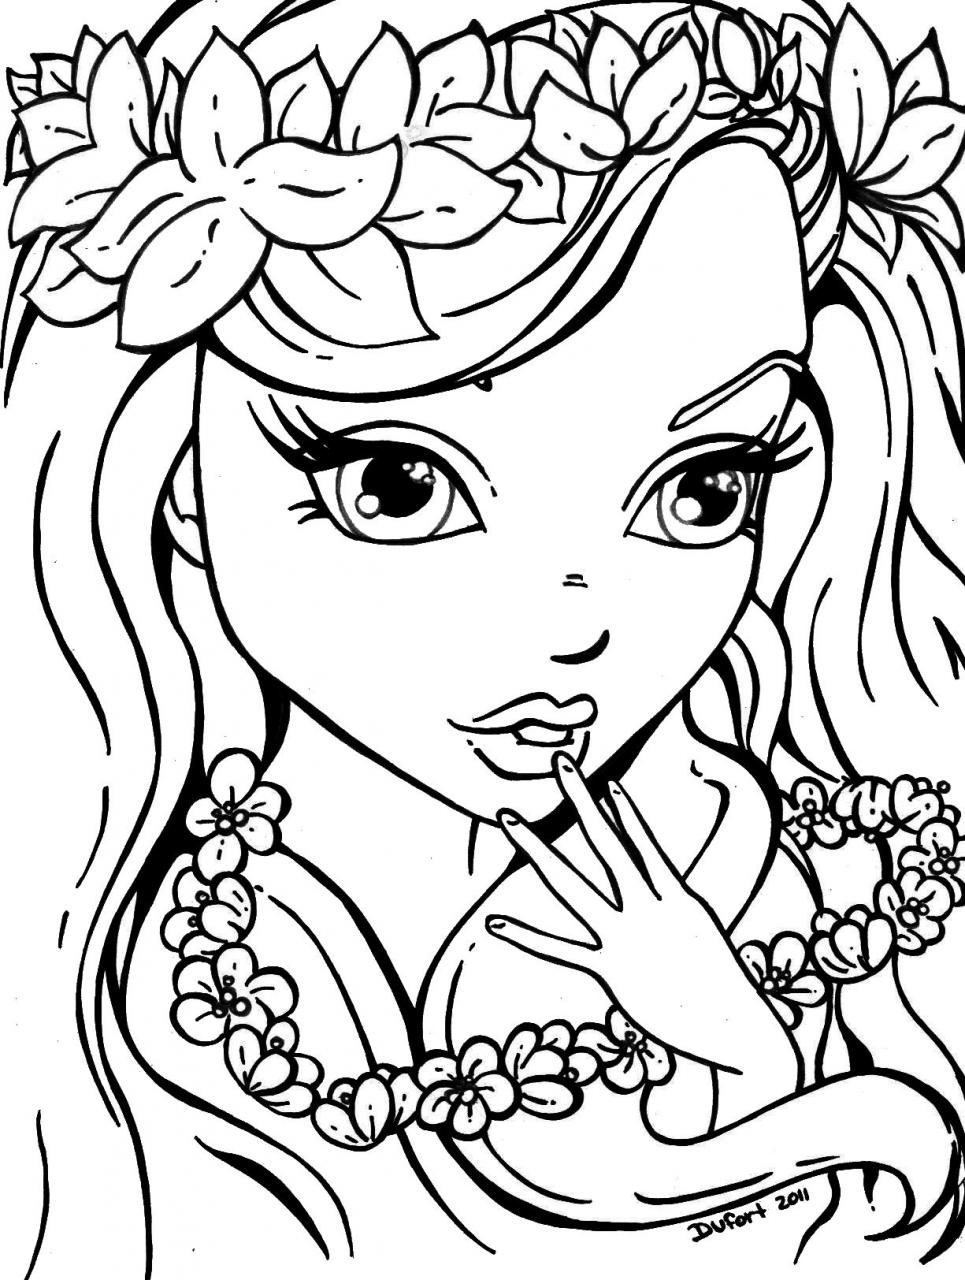 colouring pictures girls coloring pages for girls best coloring pages for kids pictures colouring girls 1 1